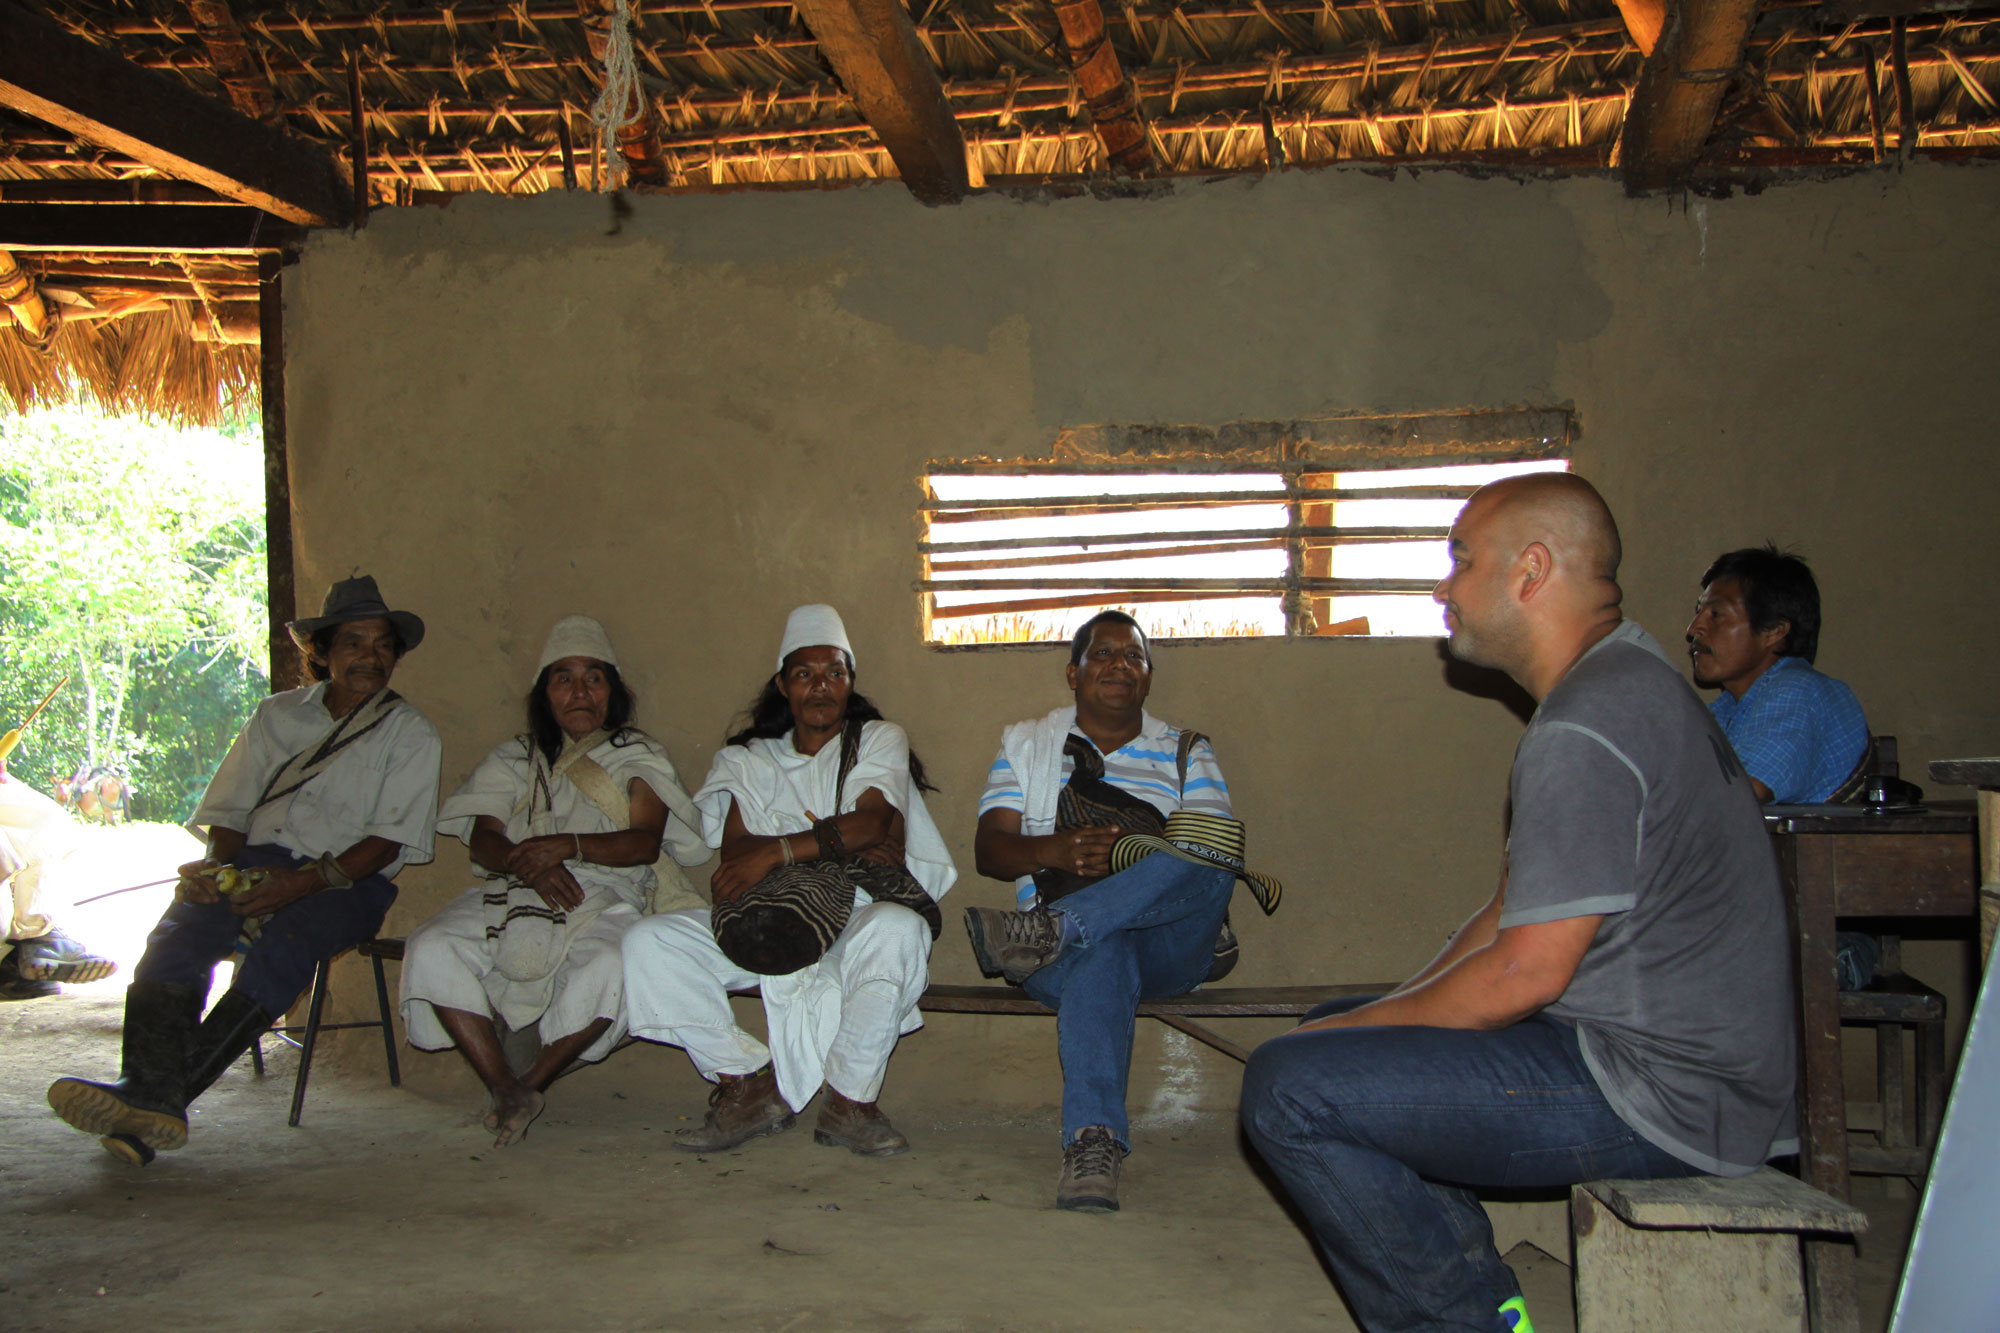 Meeting with the authorities, next to Laudelino is Ivan the Comisario and to his right is Binchi the founder of Gunchukwa.